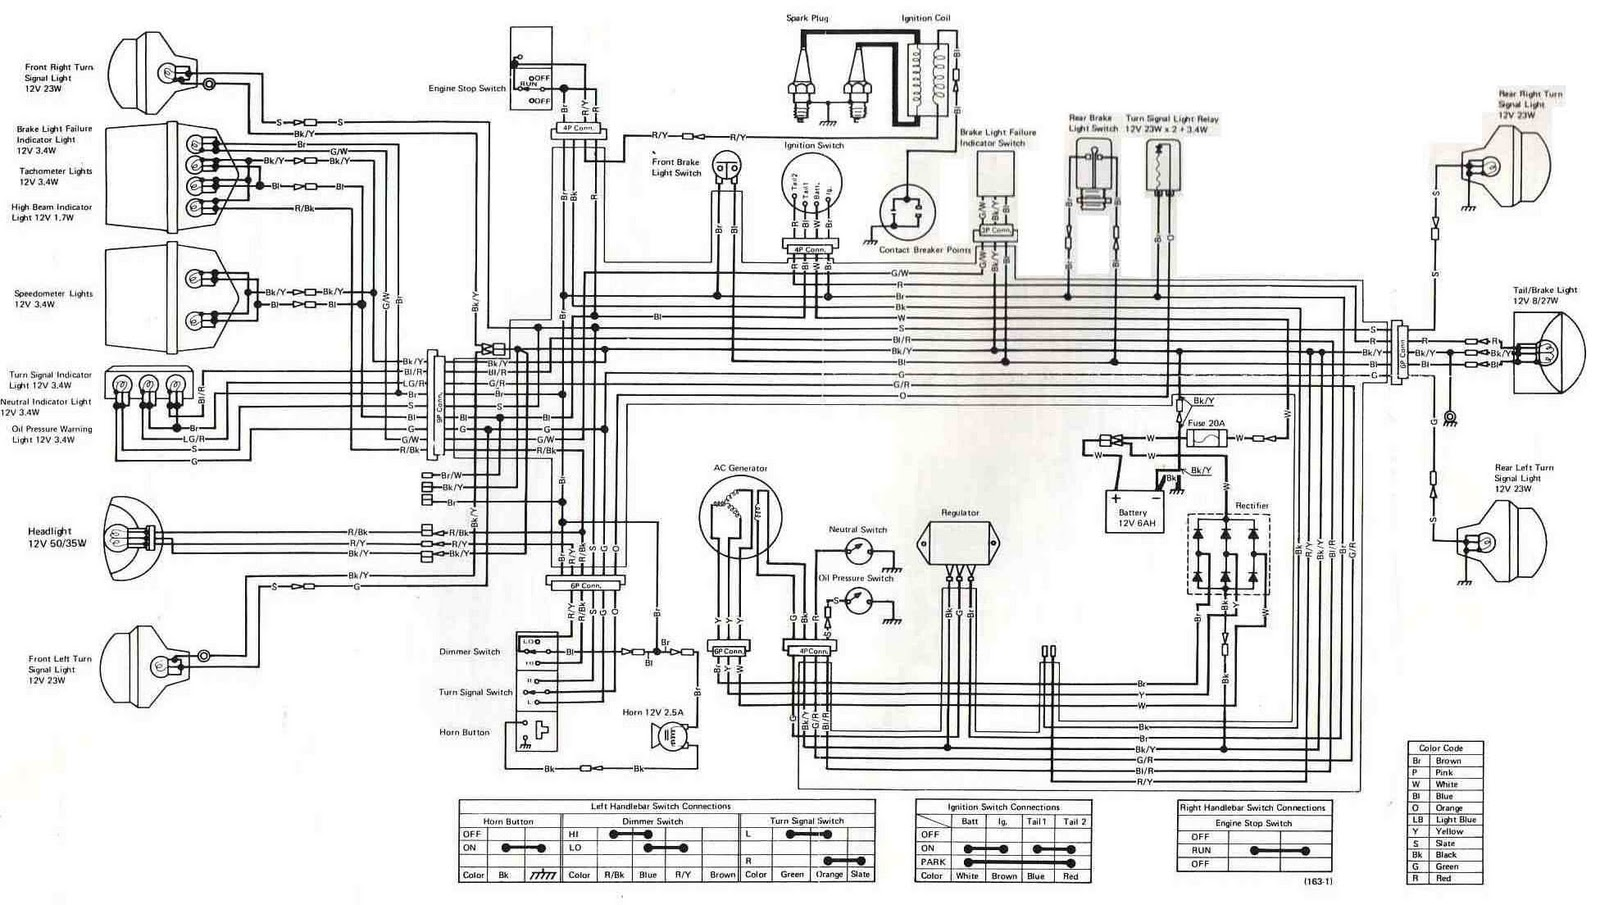 Free Electrical Wiring Diagrams : Kawasaki mule kaf wiring diagram free